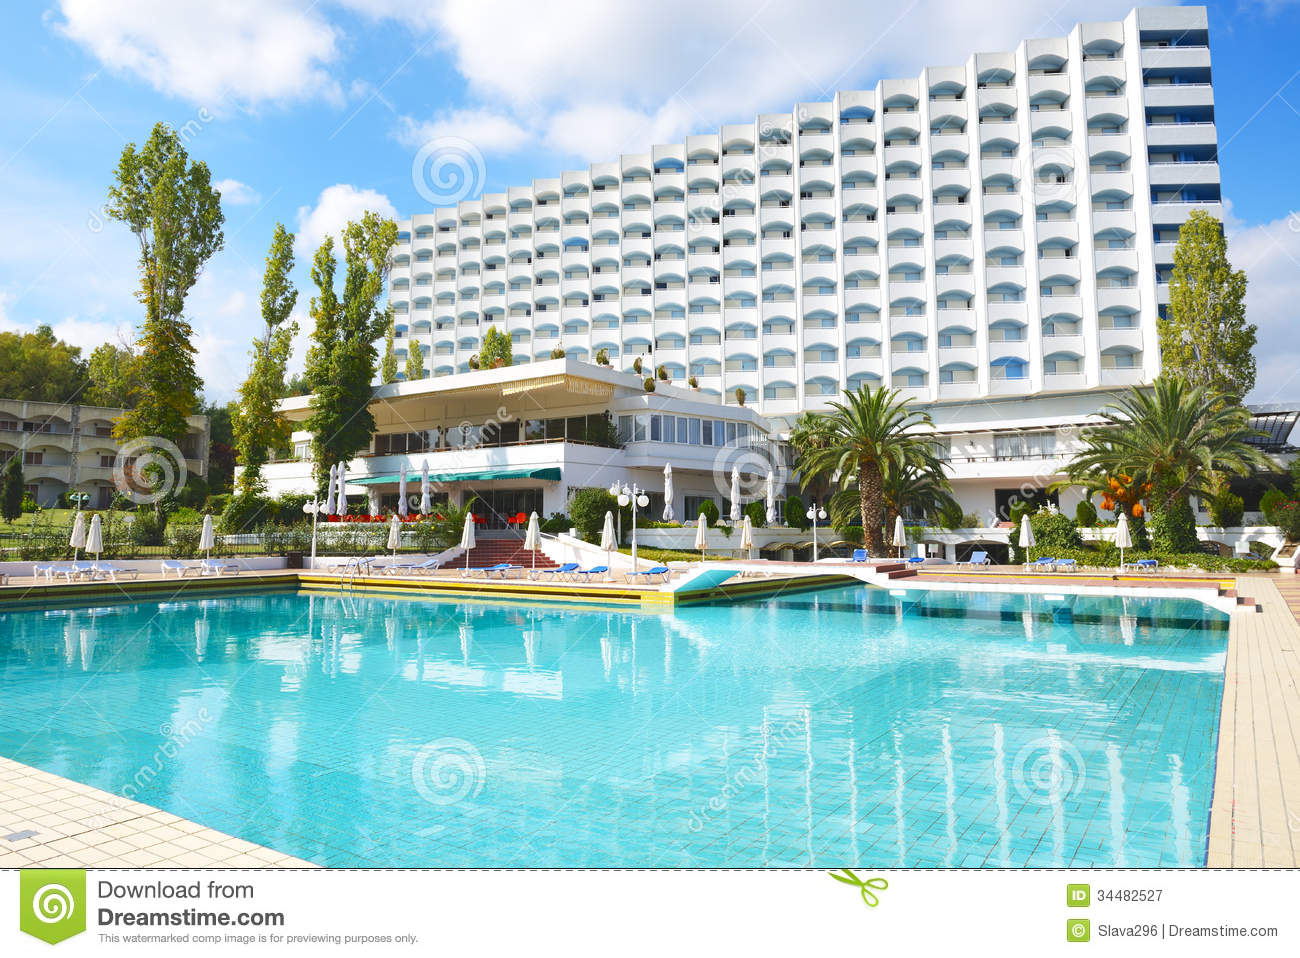 Swimming Pool Hotel : Swimming pool and building of the luxury hotel stock image